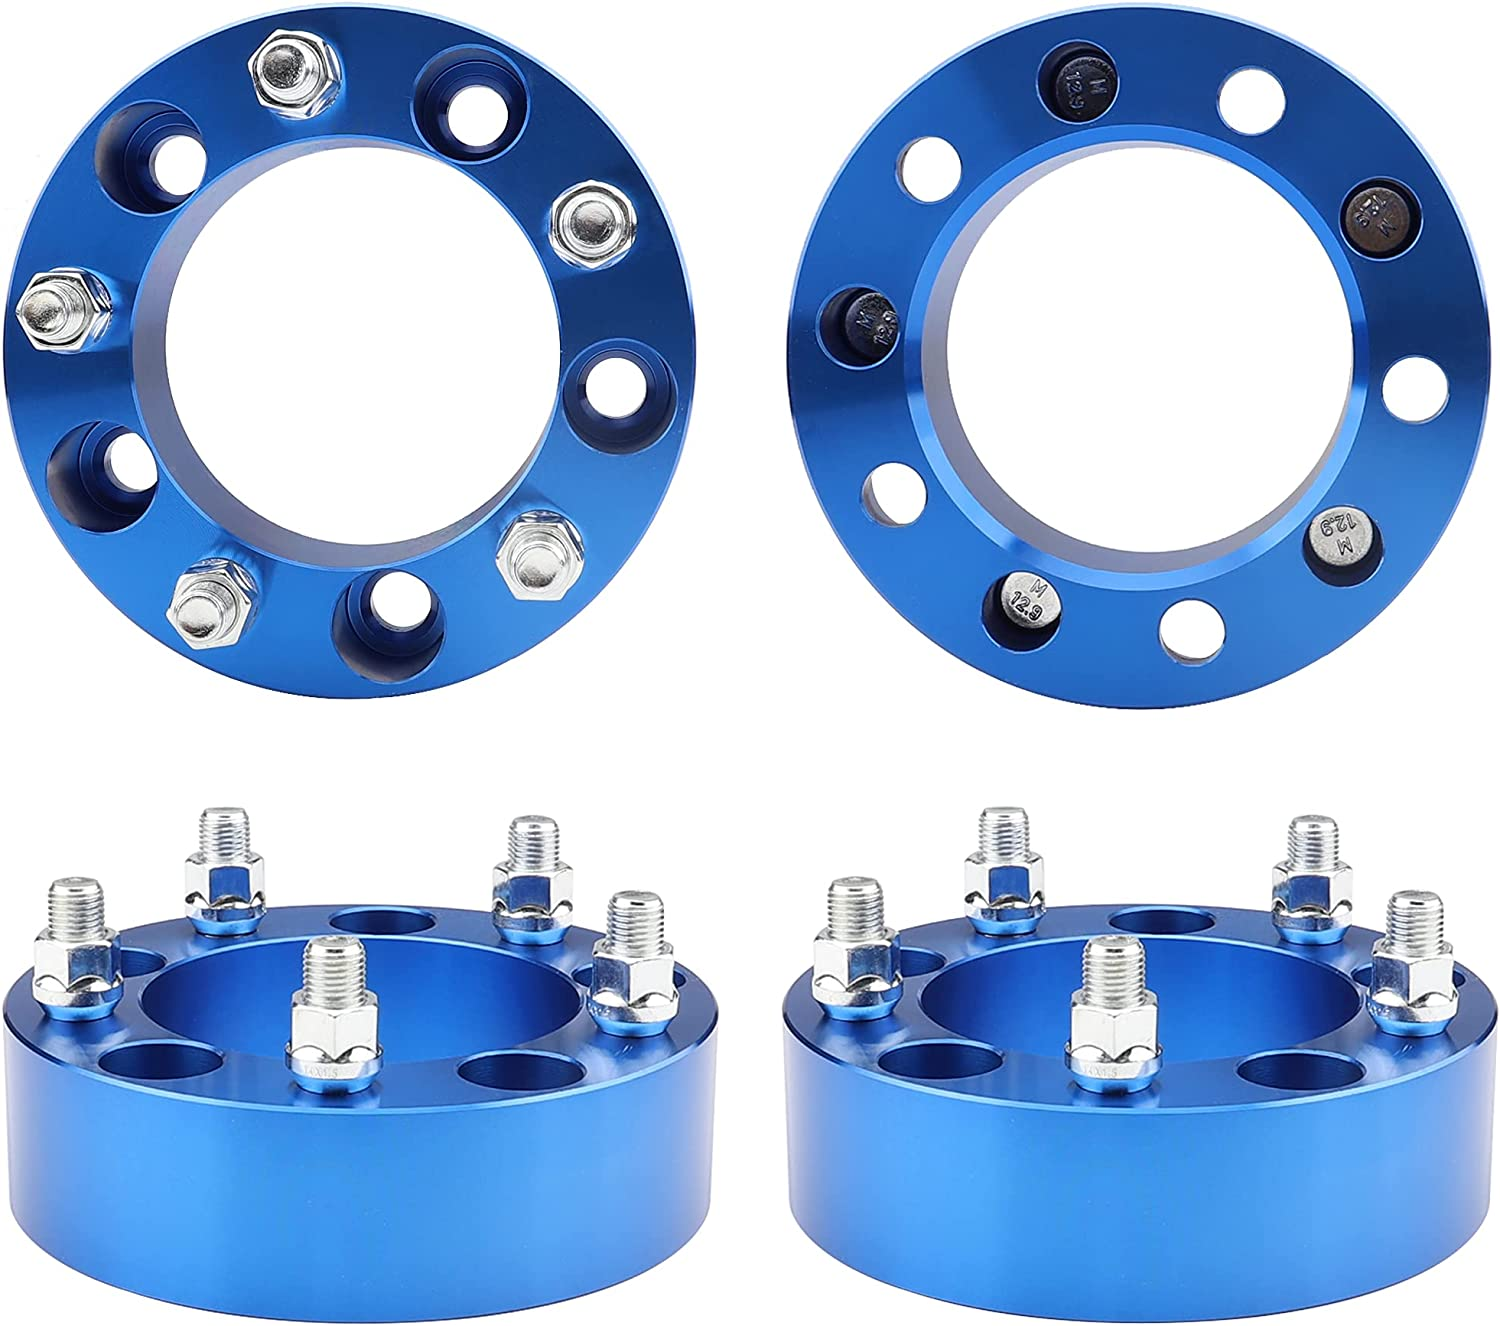 Safety and trust Ryin 5x5.5 Wheel Spacers for 2012-2018 2 1500 inch lowest price 5x139.7m Ram